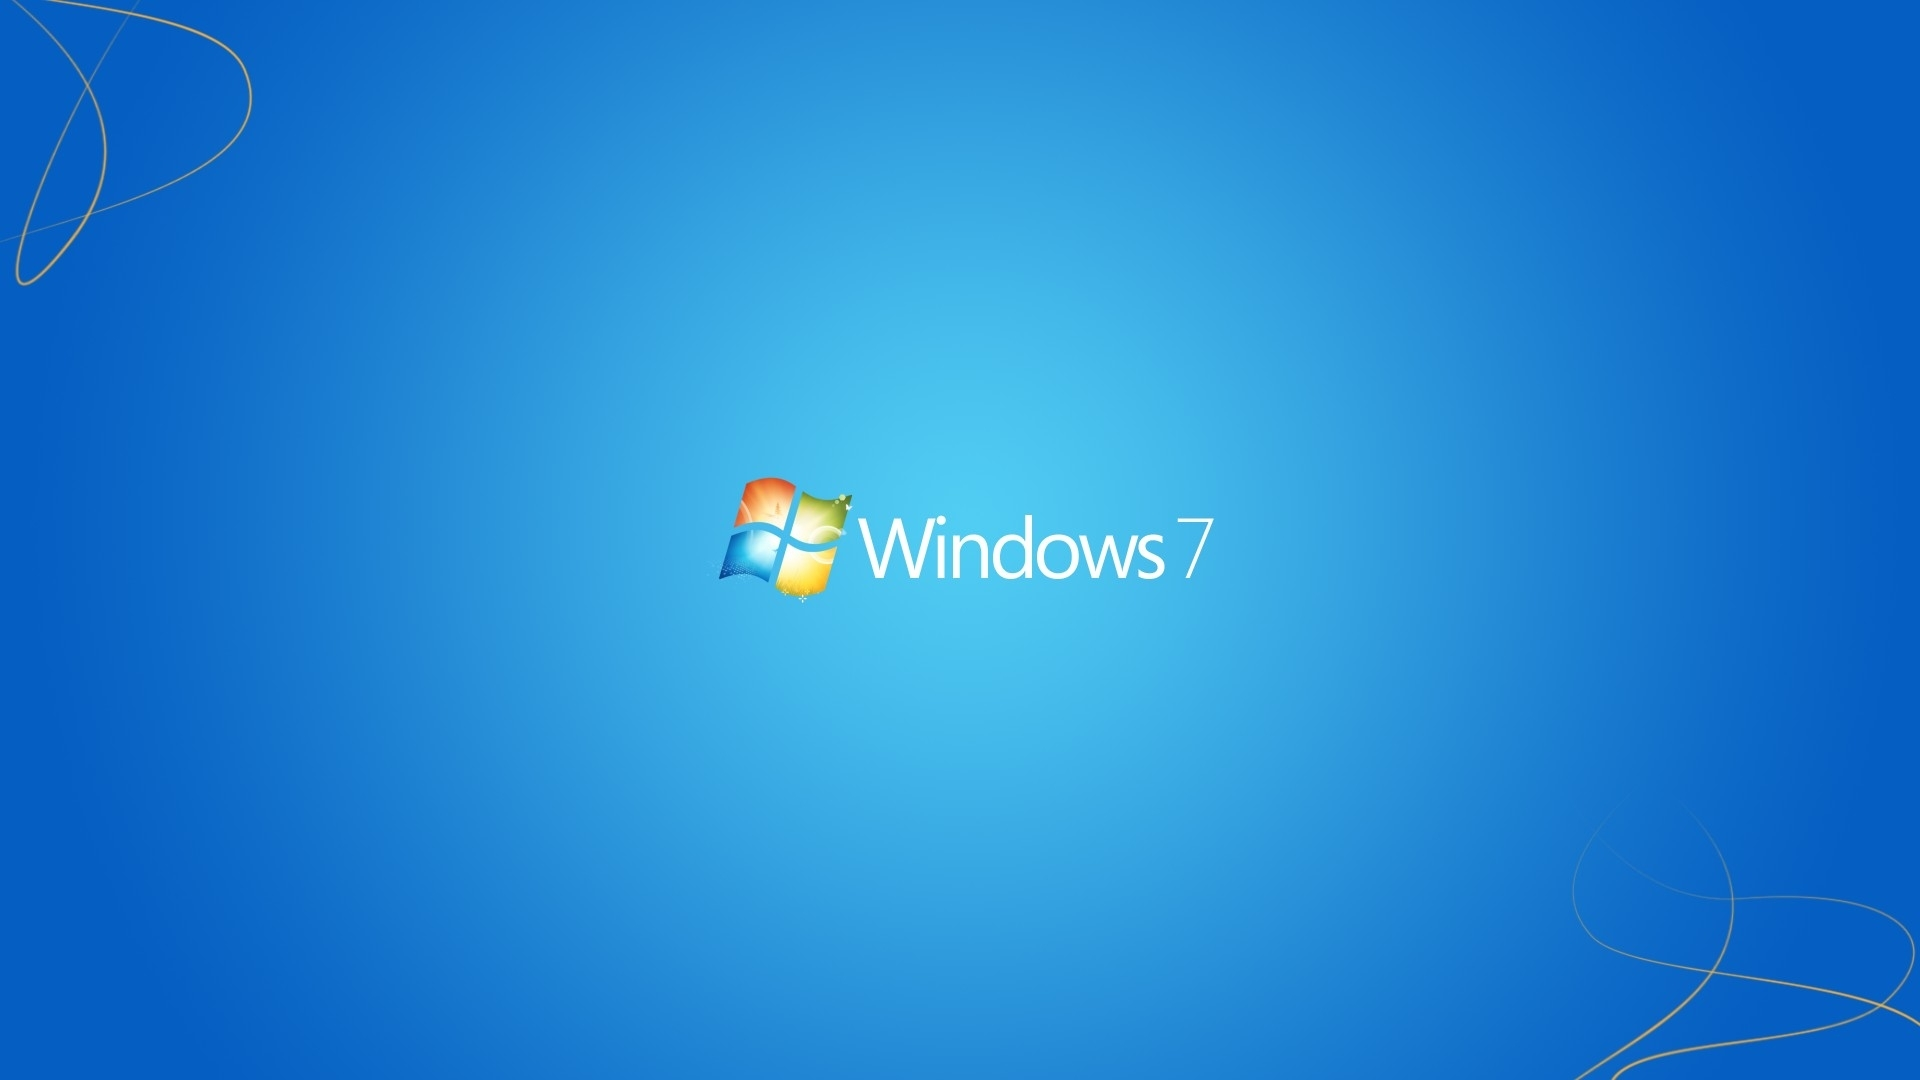 10 Most Popular Windows 7 Wallpapers 1920x1080 Full Hd 1080p For Pc